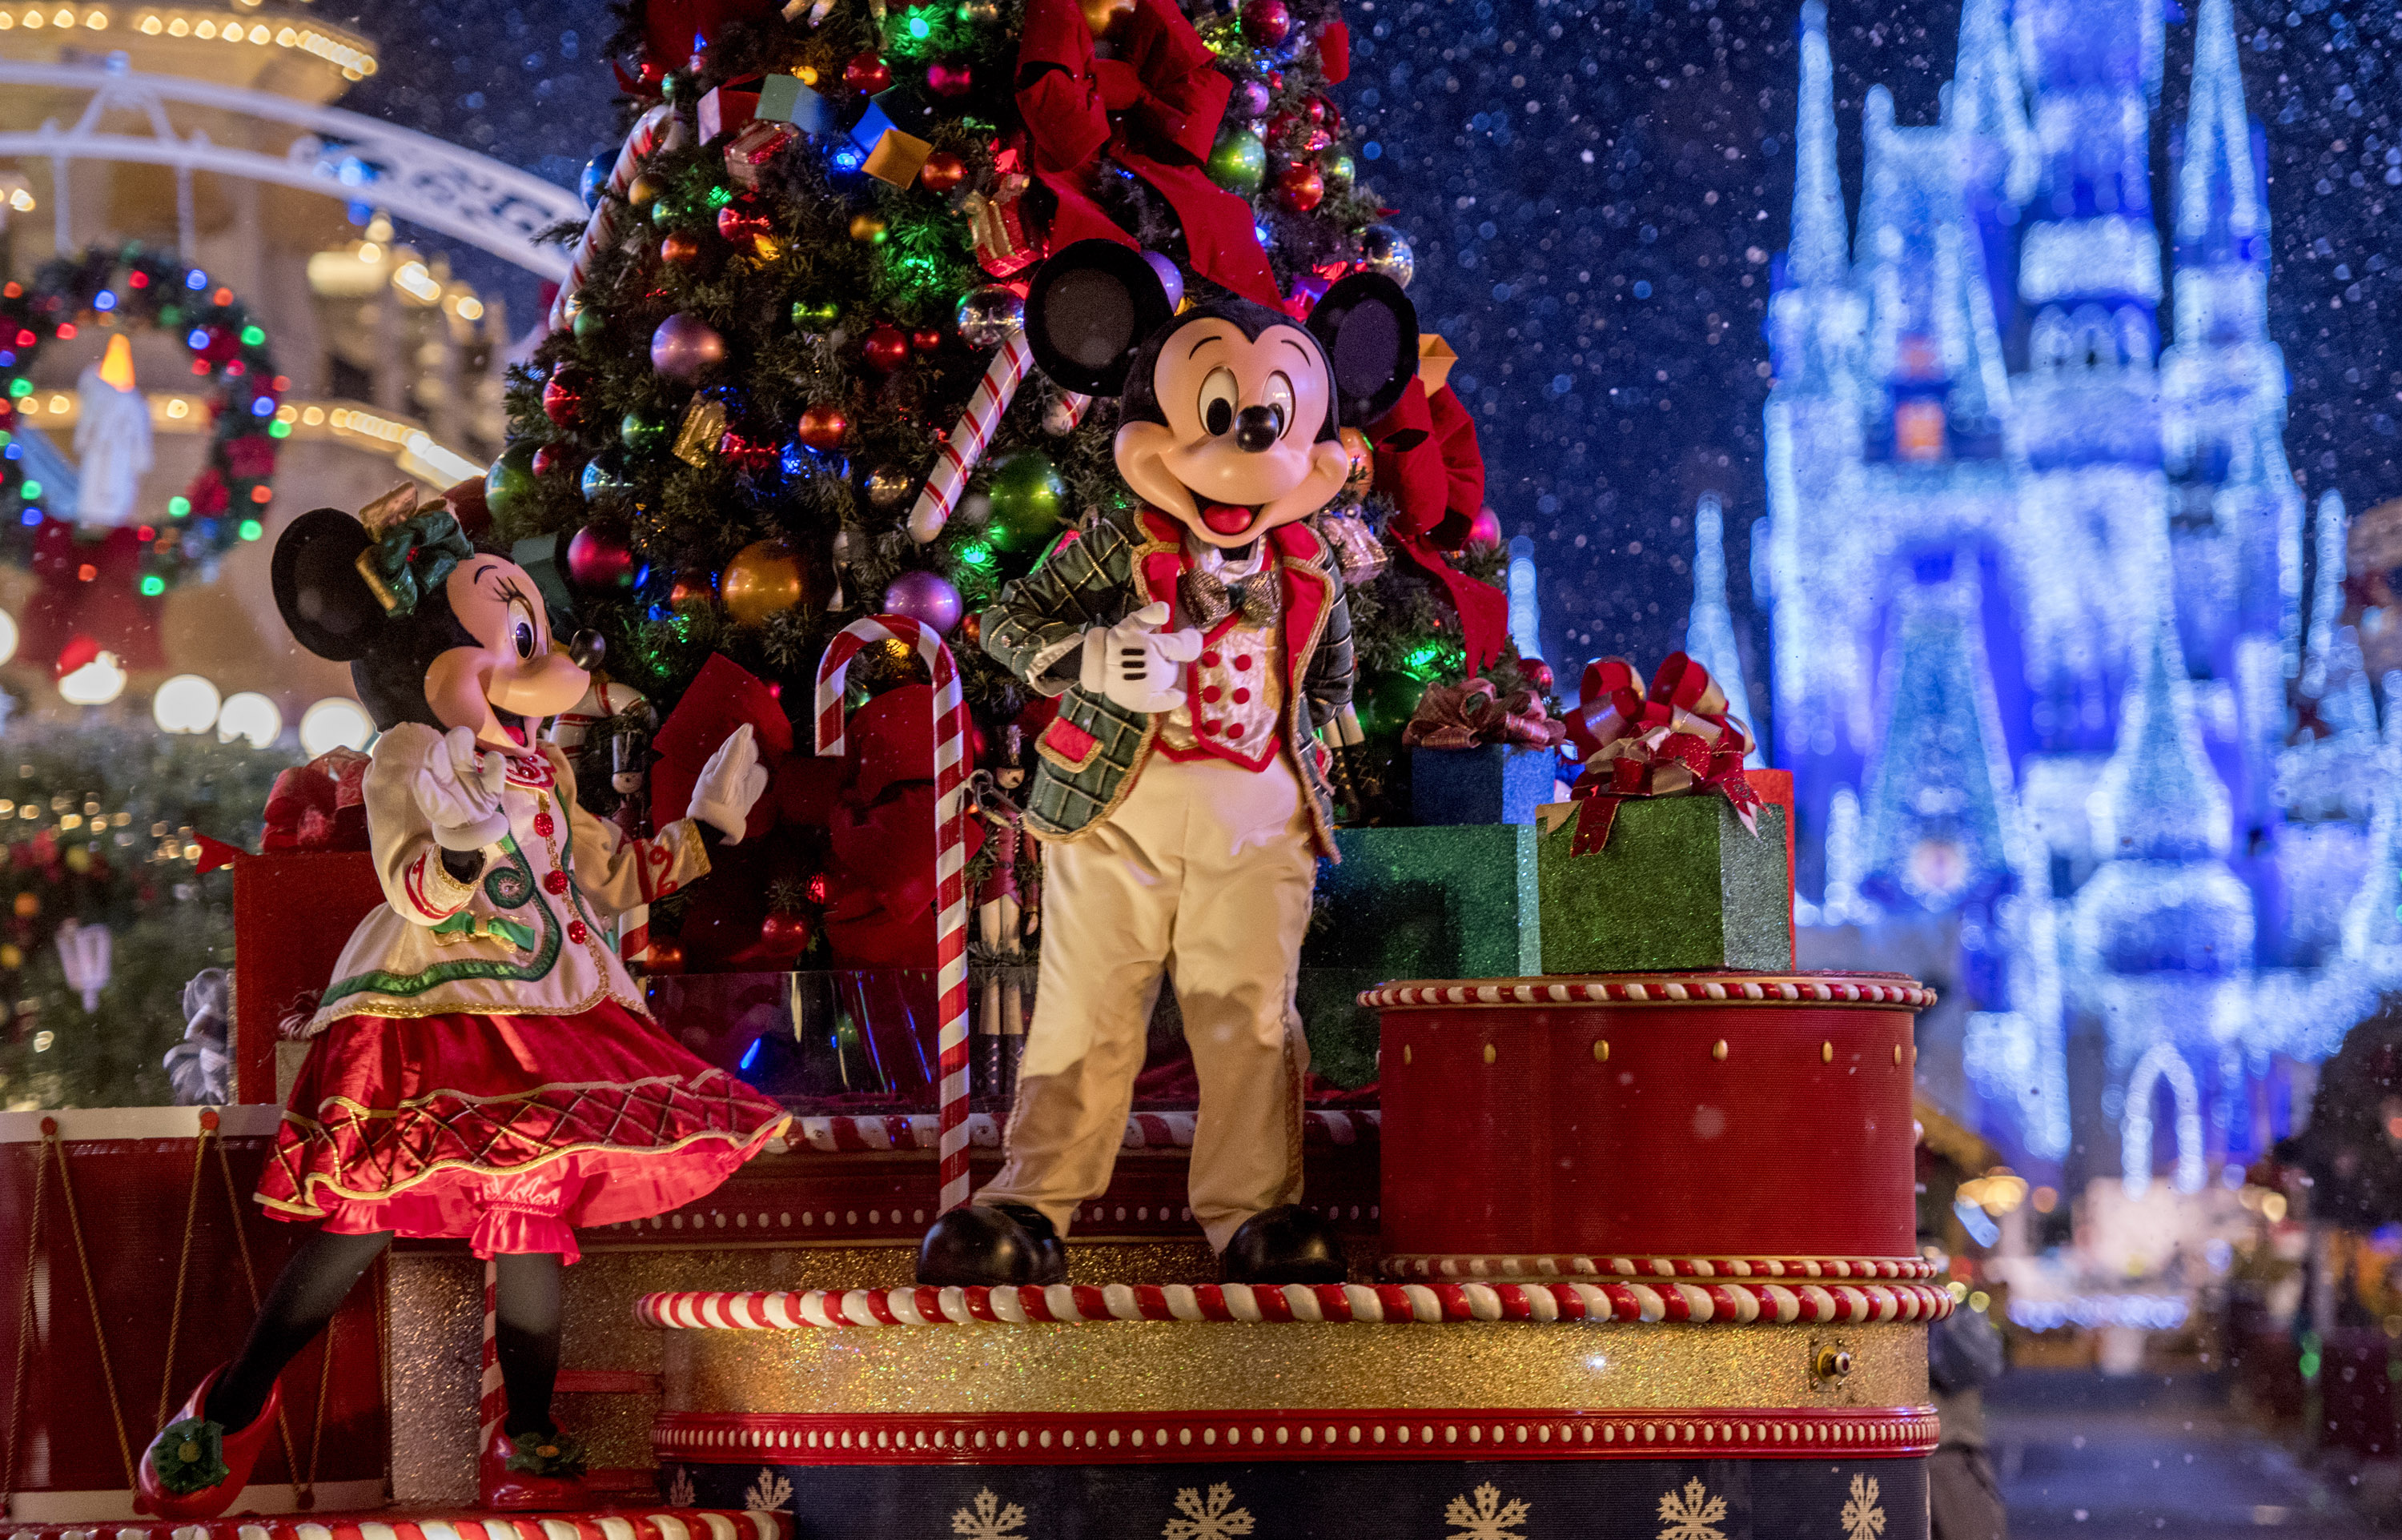 view larger image - Mickeys Christmas Party